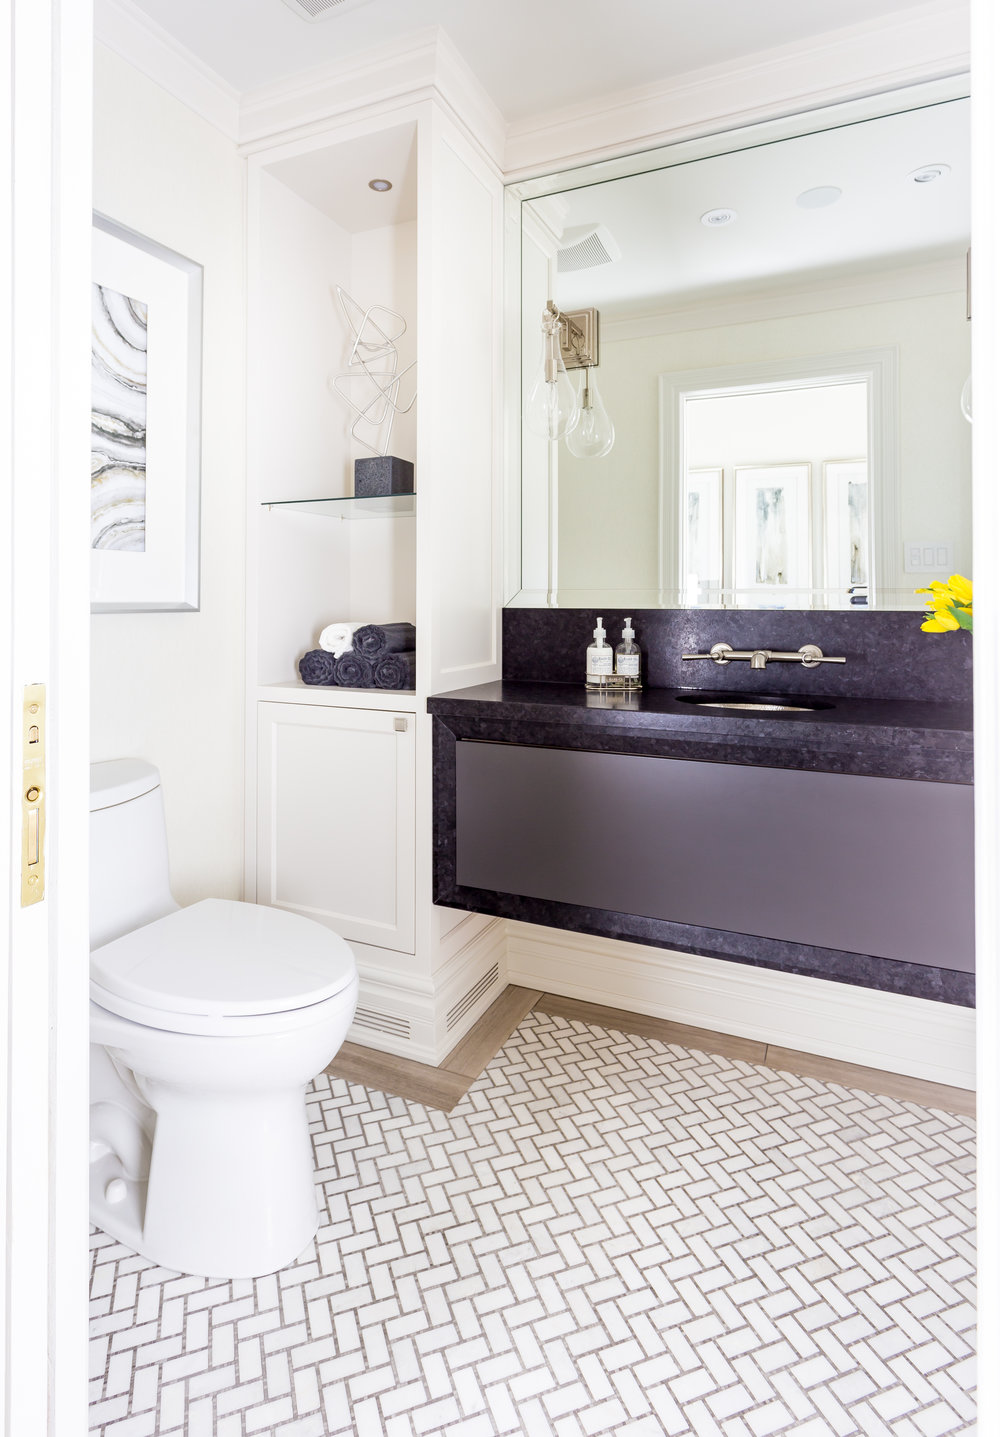 oakville-interior design-powder room-vanity-robson hallford